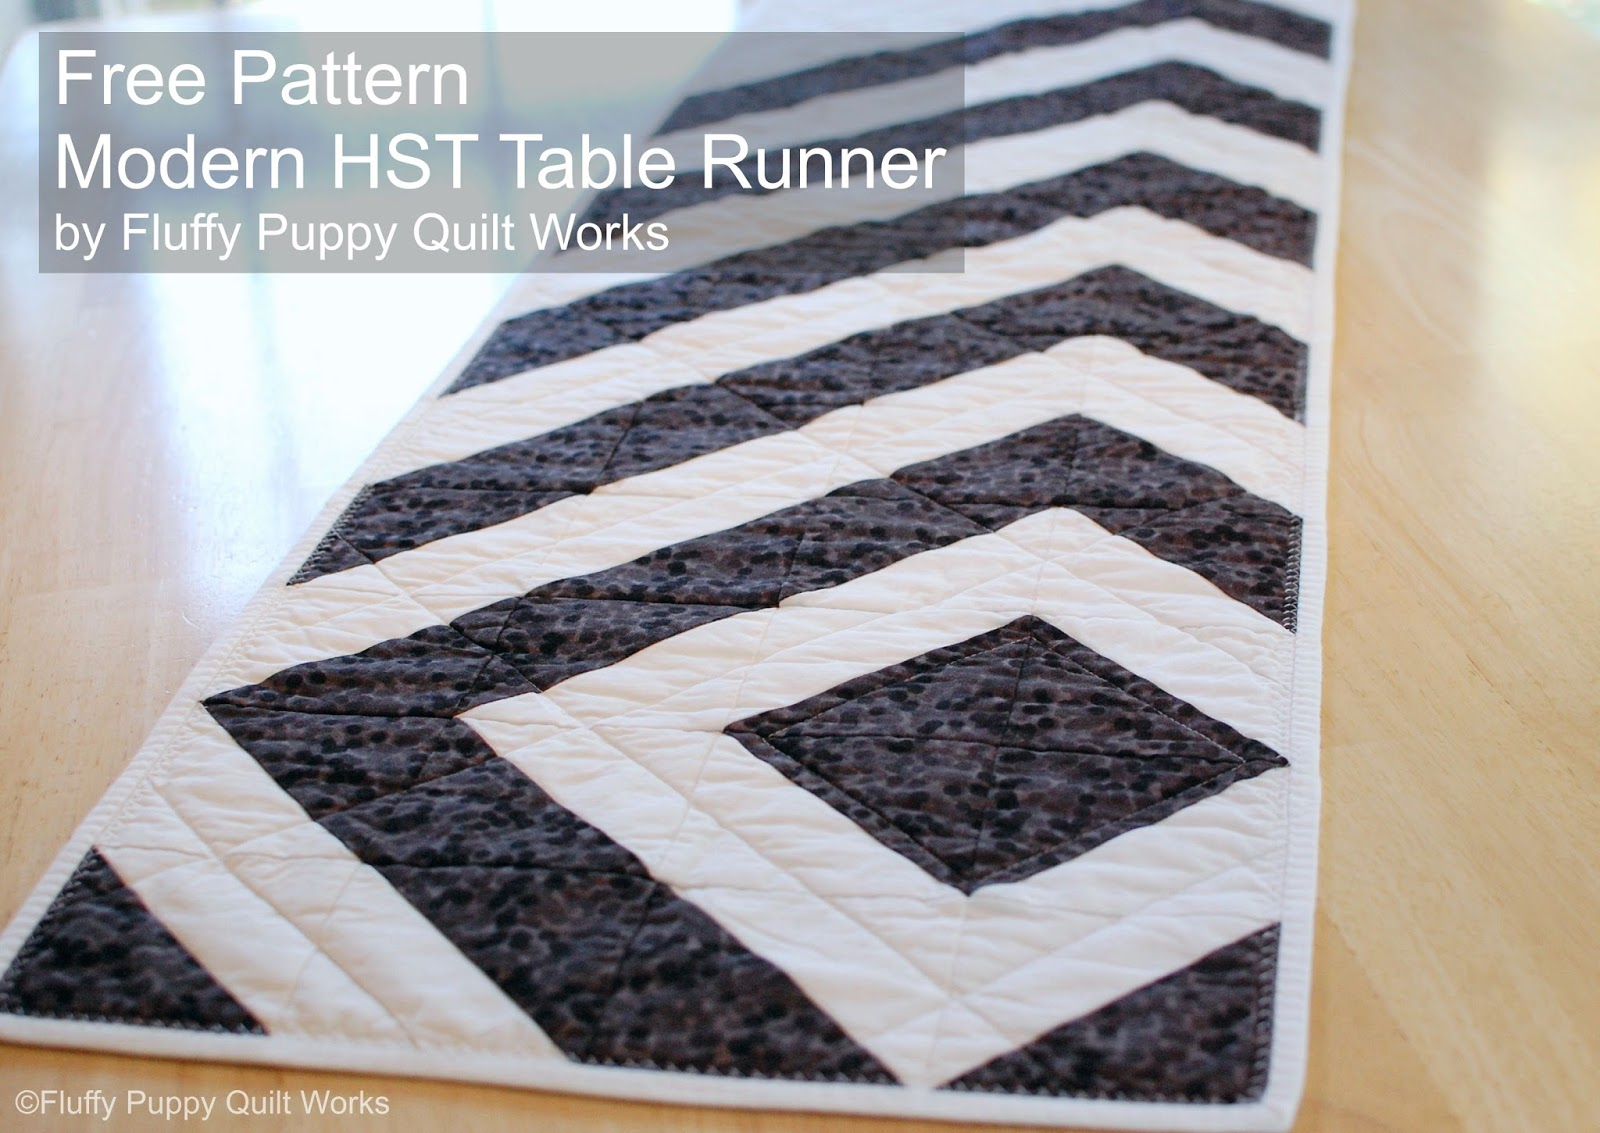 Fluffy puppy quilt works free pdf pattern modern hst for Table design patterns